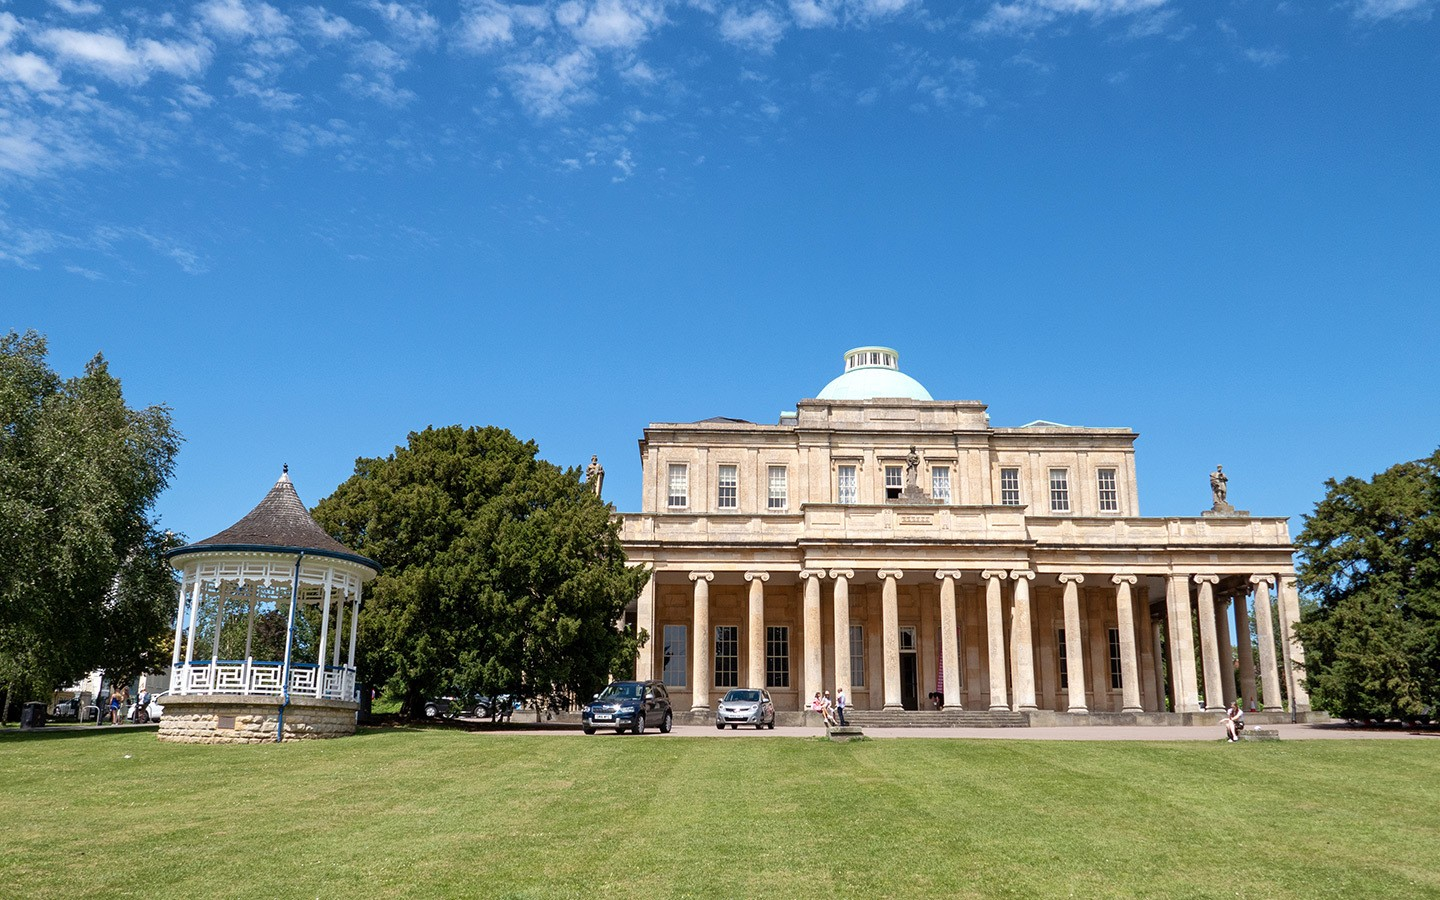 The Pittville Pump Room and park in Cheltenham, an alternative to visiting Bath